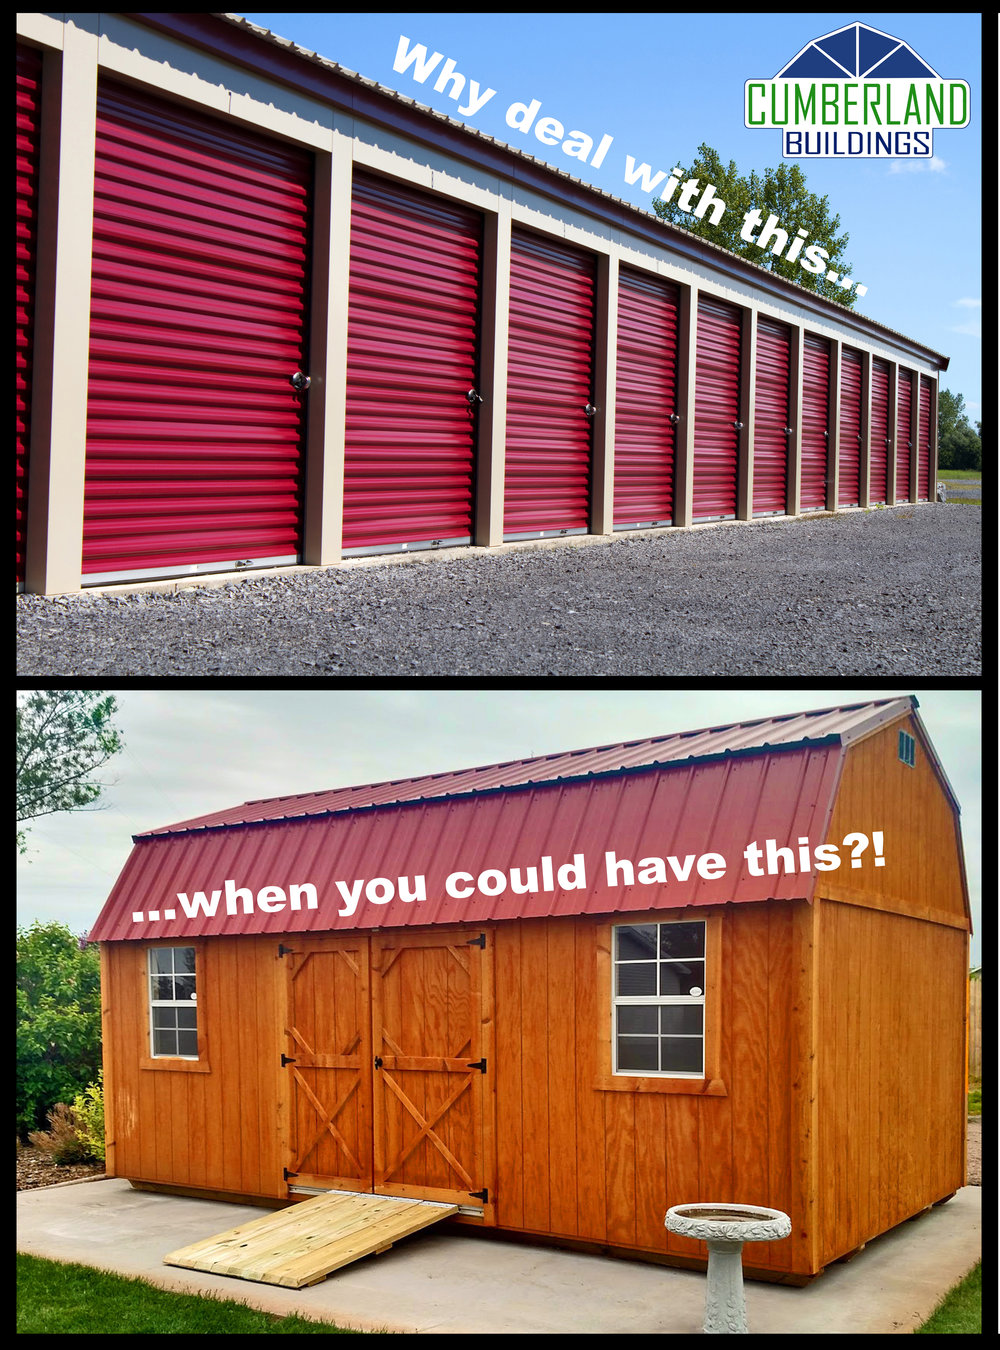 Why deal with a storage unit when you can be rent free with a Cumberland Buildings storage shed or garage.